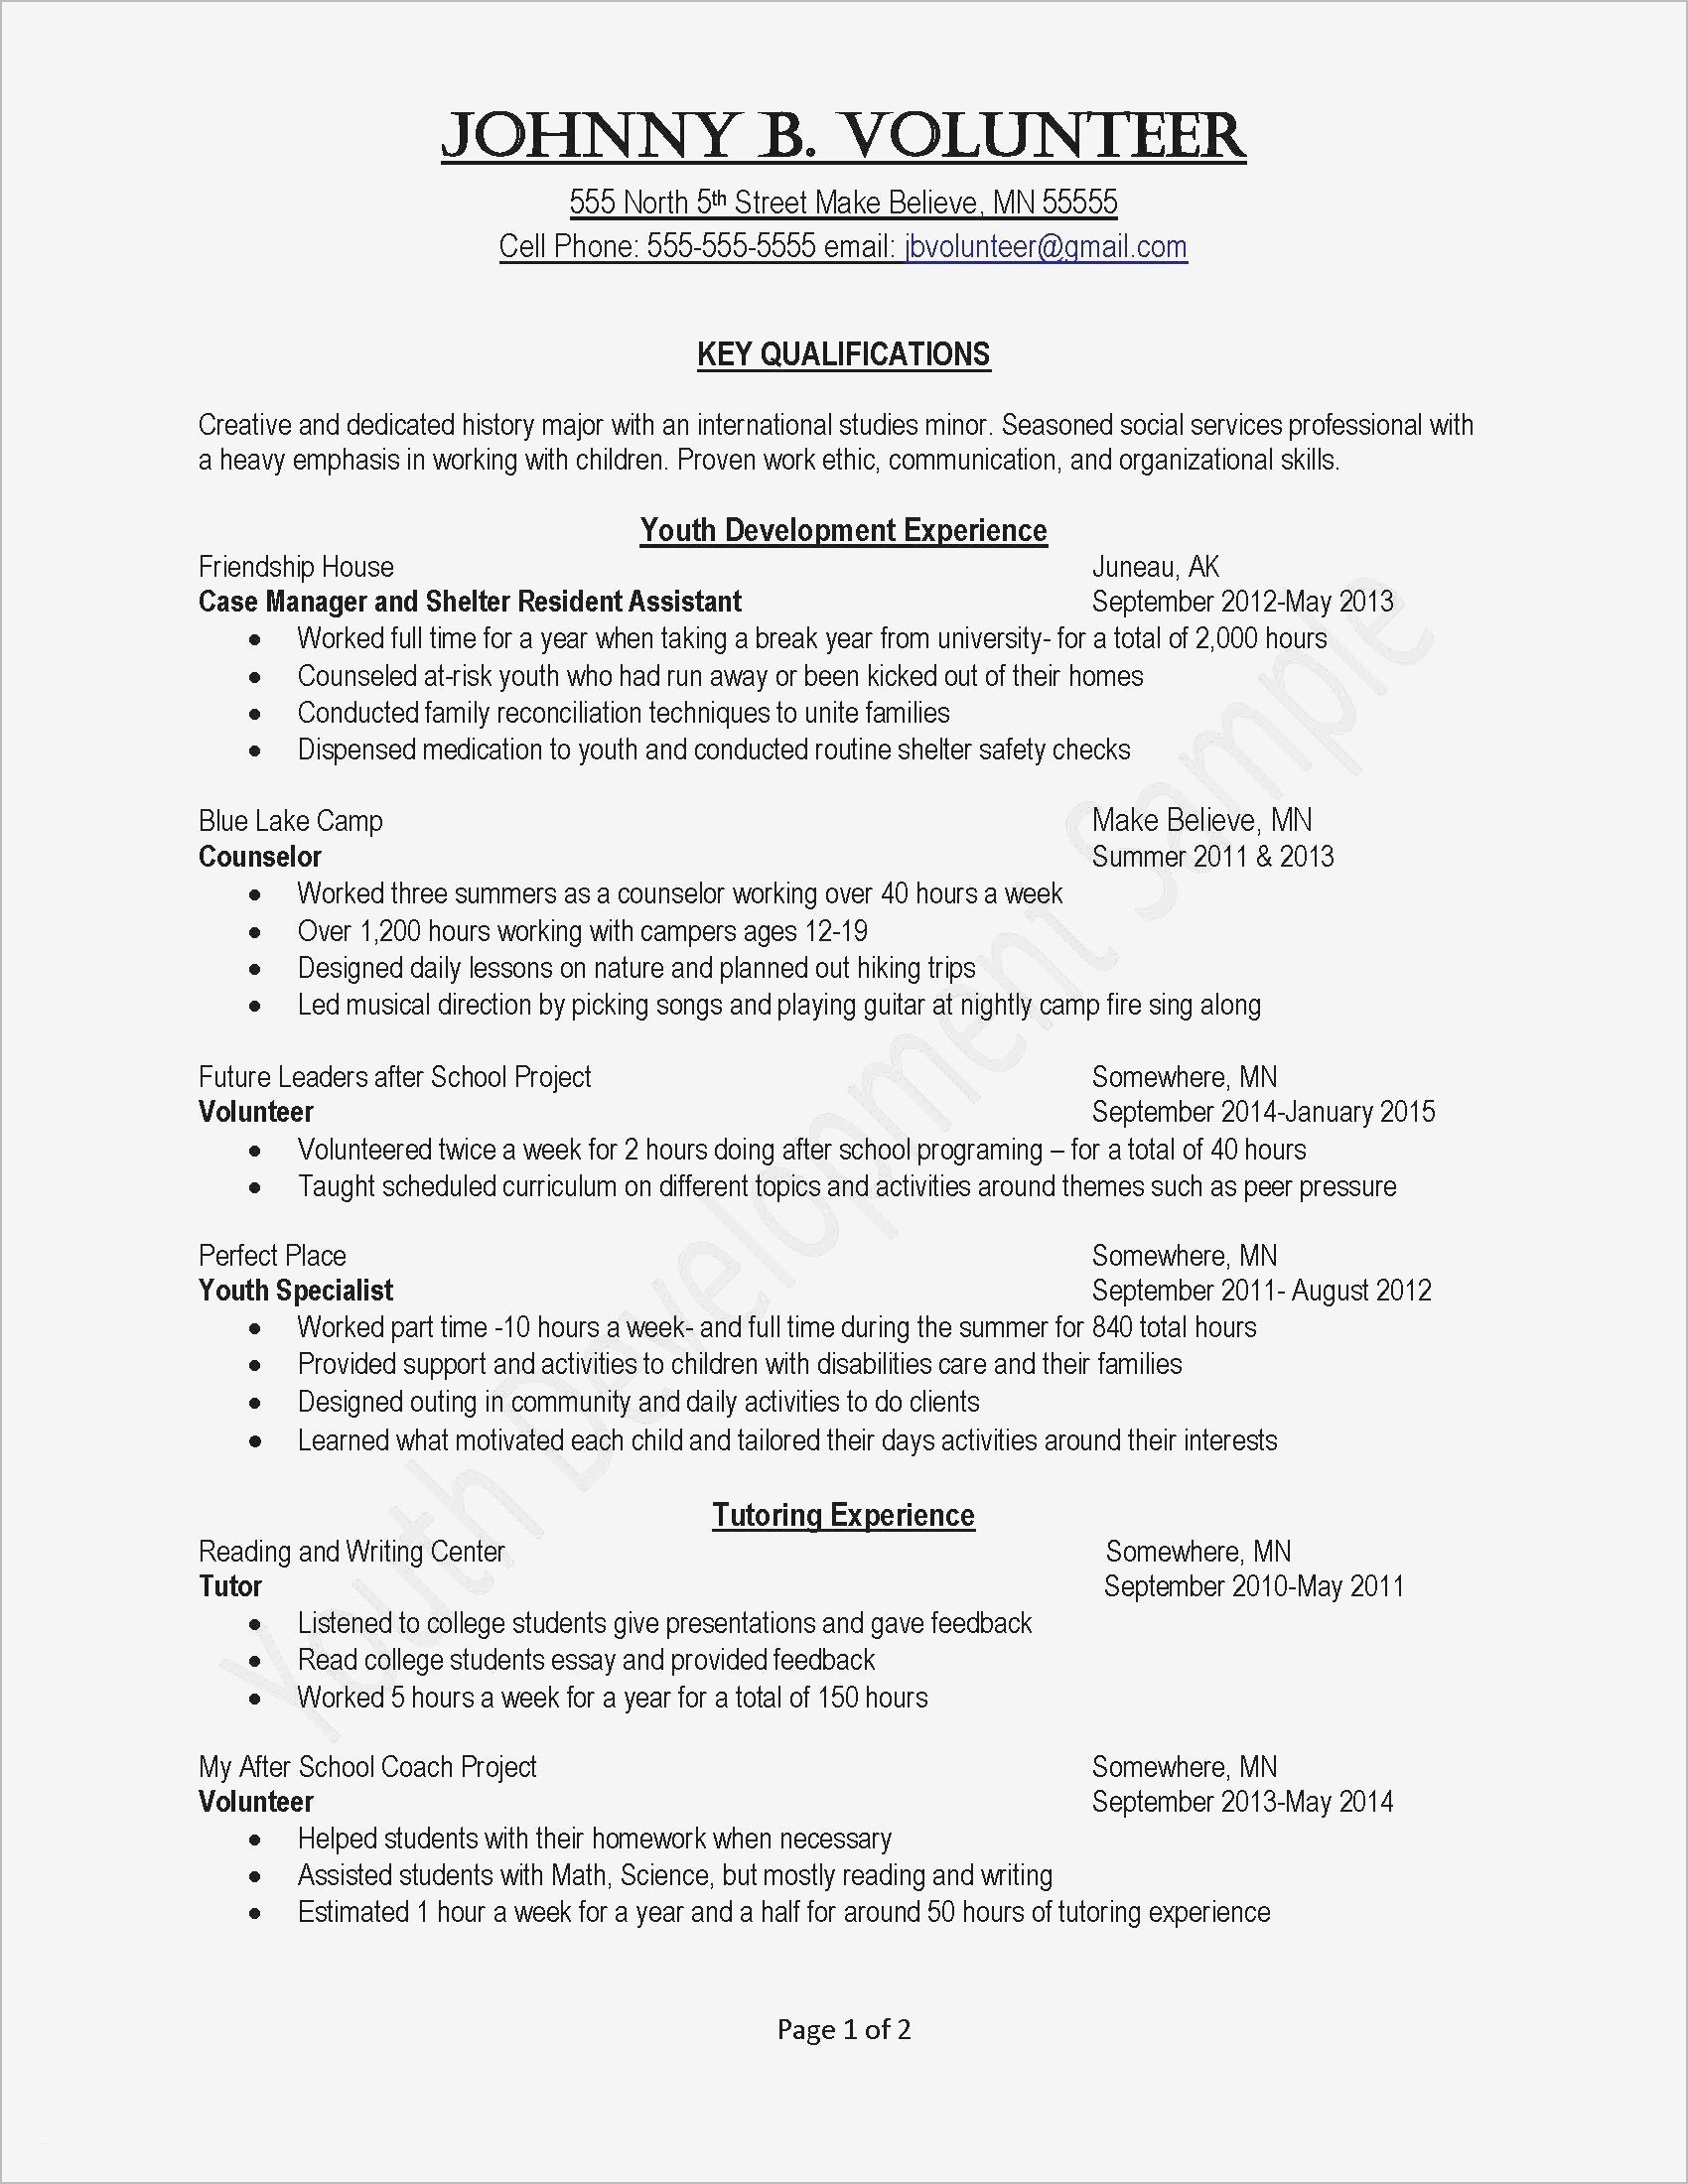 free past due letter template Collection-Free Resume Website Template Valid Job Fer Letter Template Us Copy Od Consultant Cover Letter Fungram 3-h